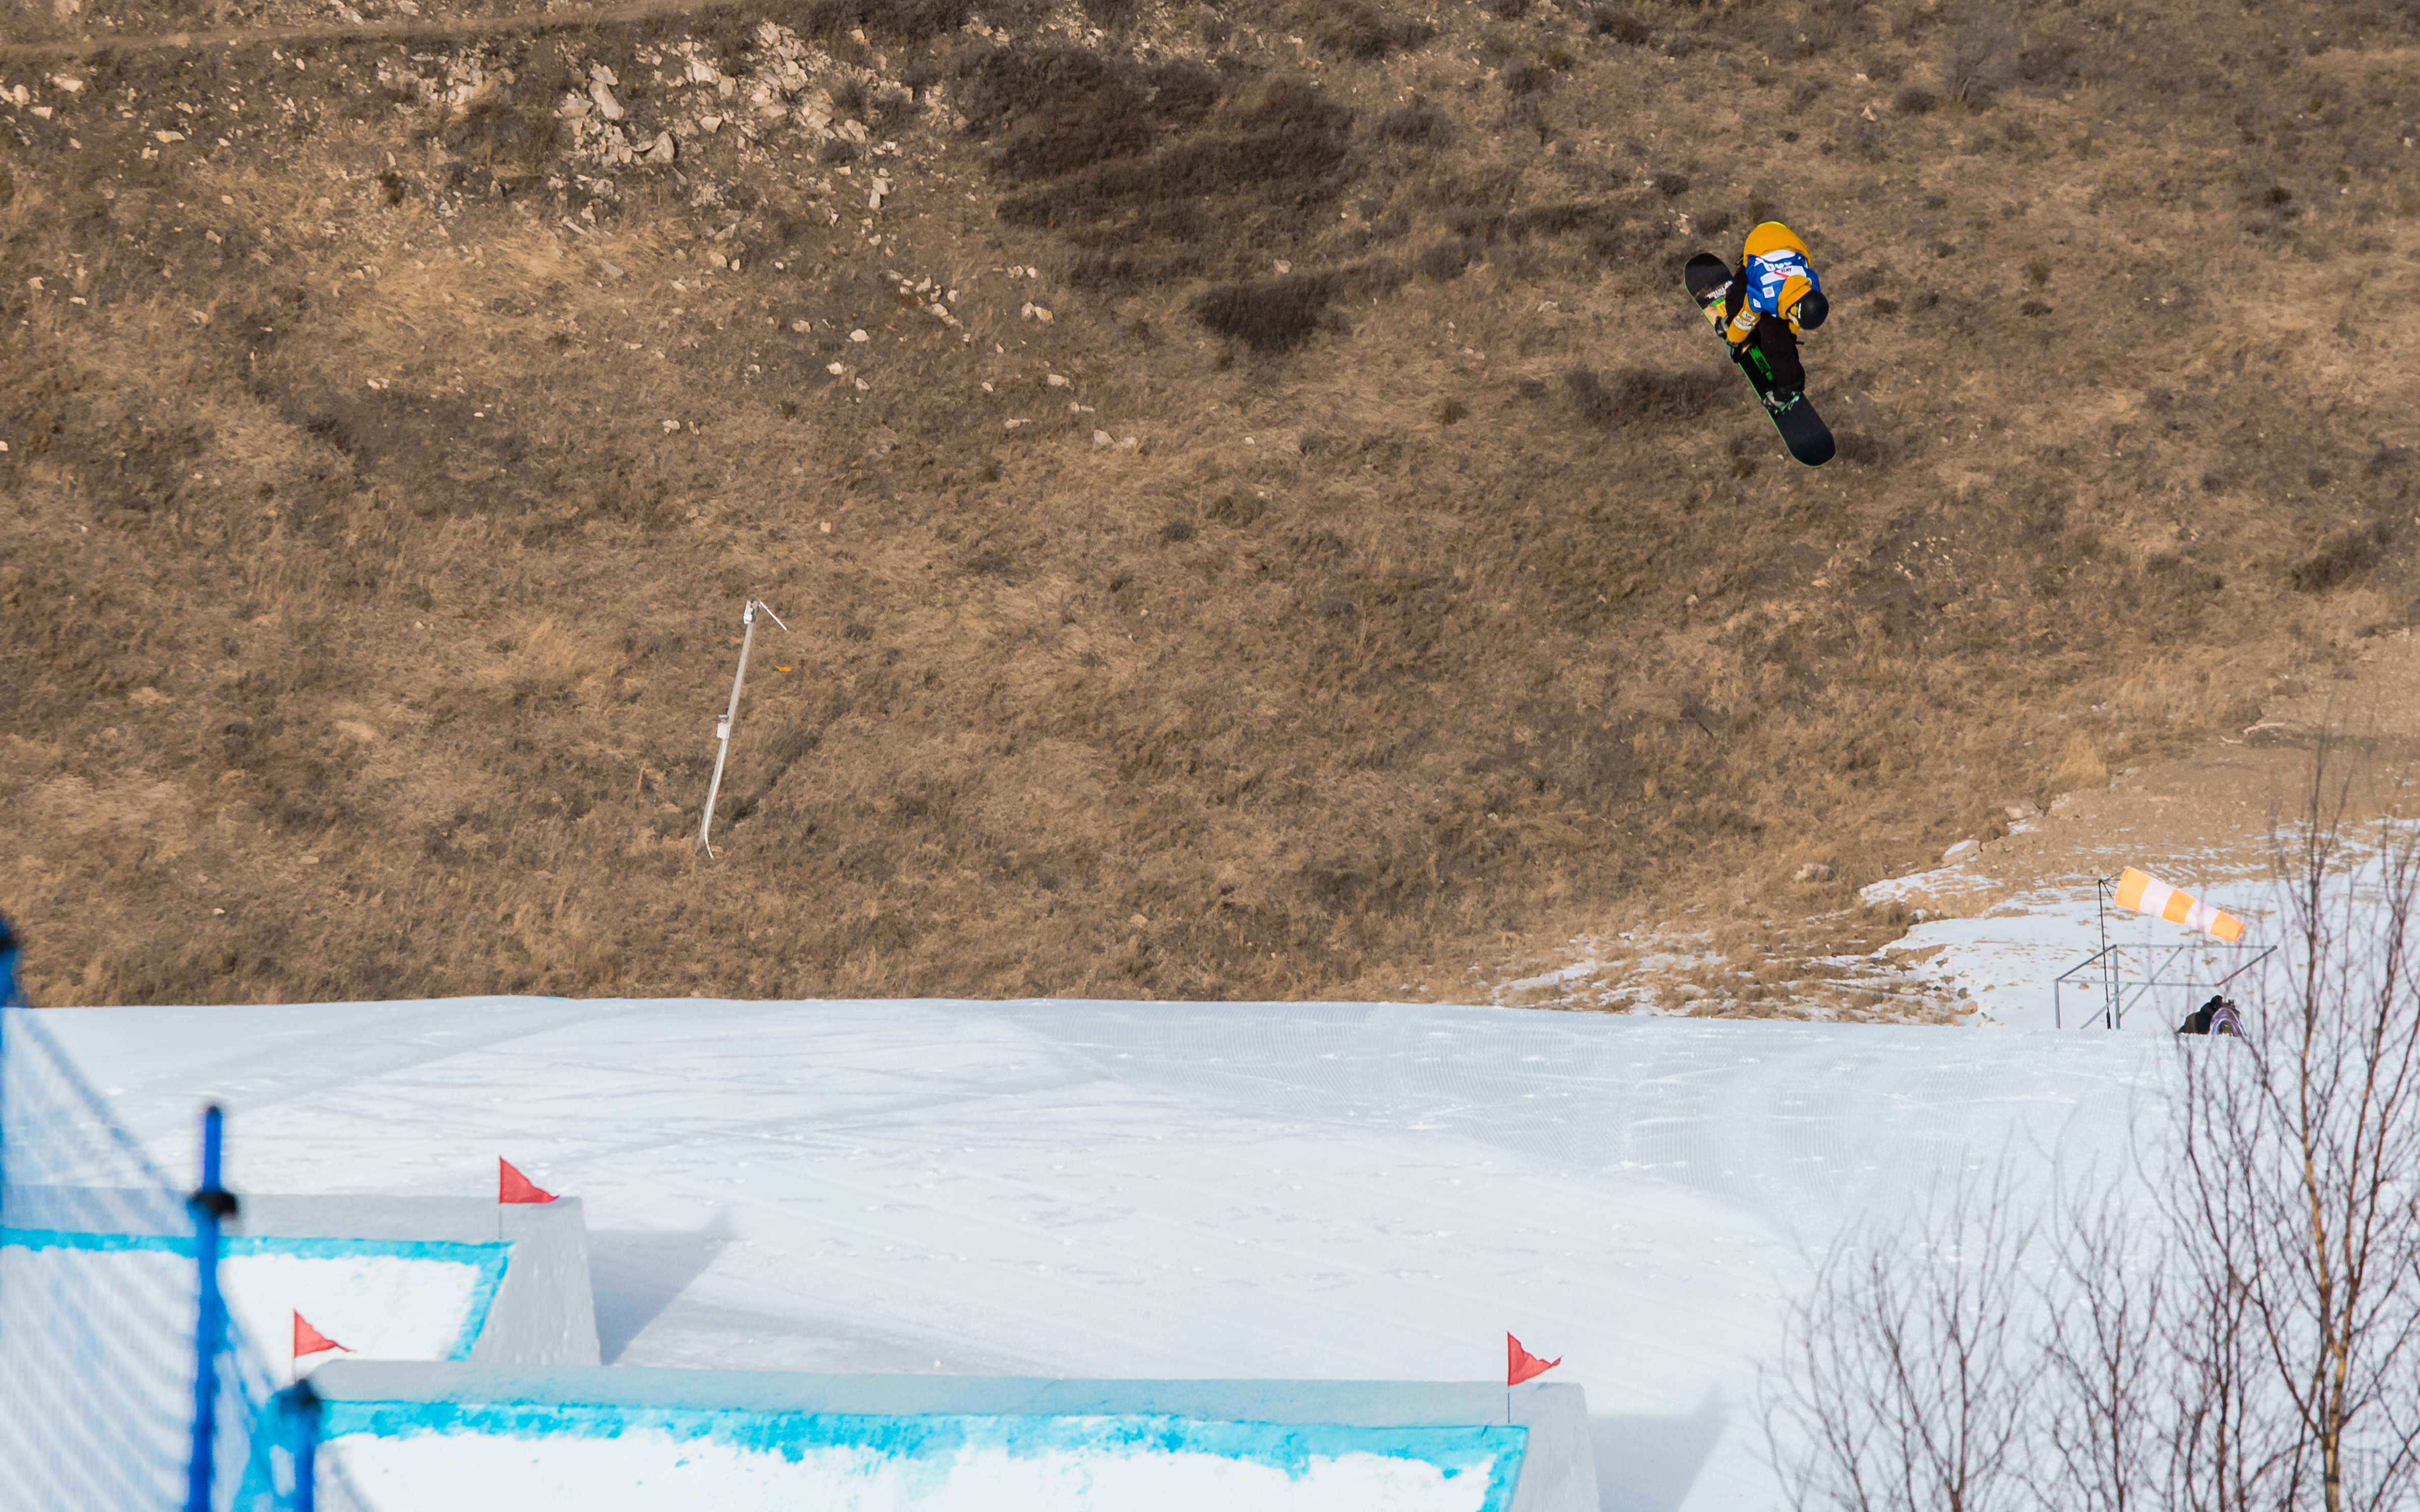 Yuri Okubo cab-12 over the first kicker during the  FIS World Cup Secret Garden slopestyle event in China.